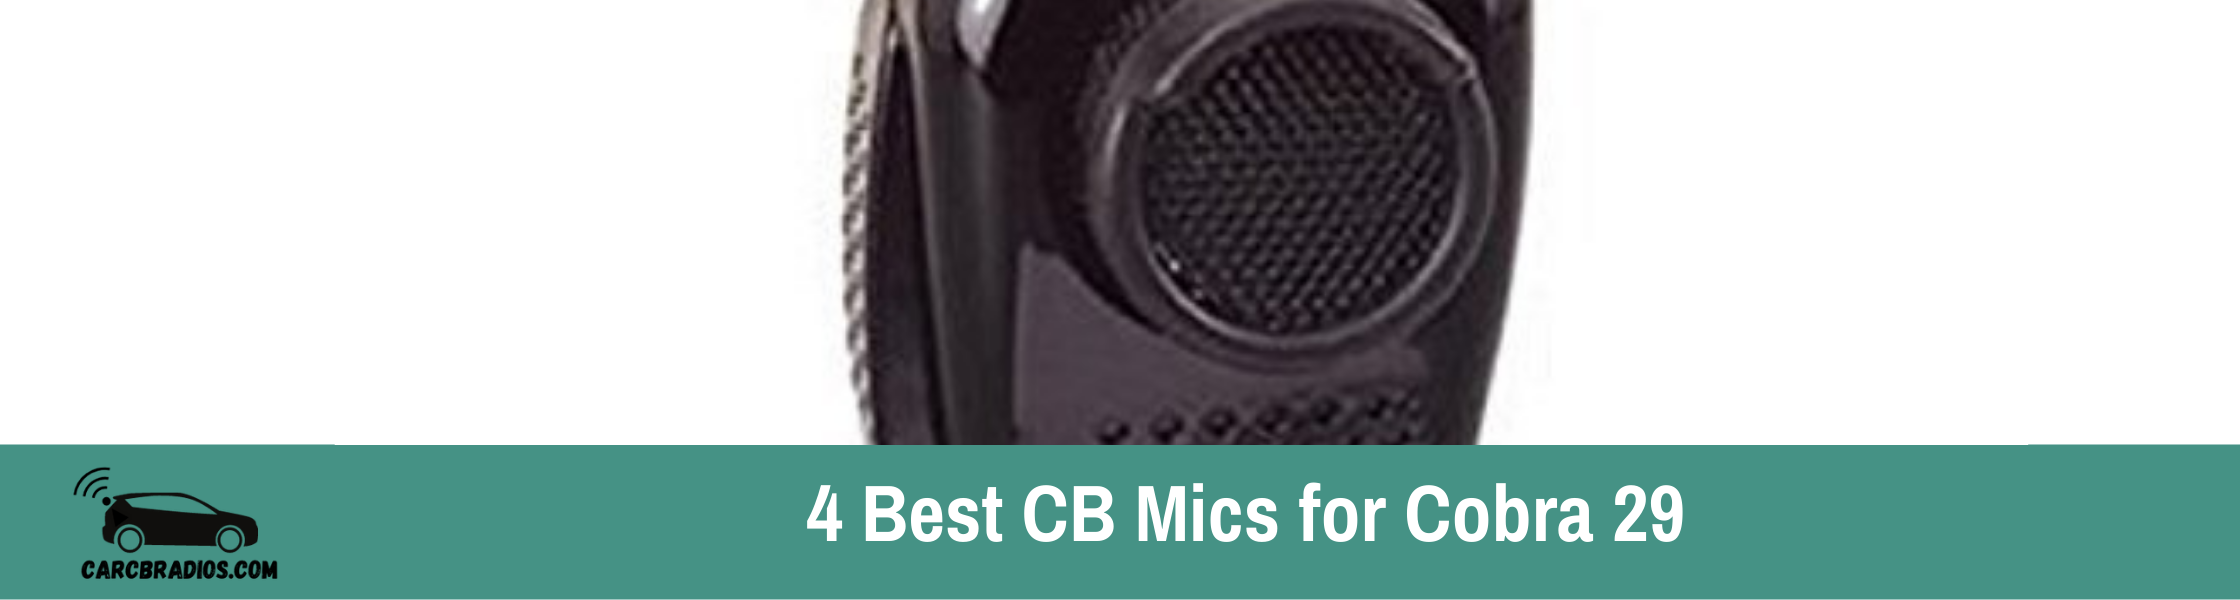 4 Best CB Mics for Cobra 29: Need the best CB Mic for Cobra 29? No problem. Luckily, we have many high-quality CB mics that make sure you are loud and clear to your peers.